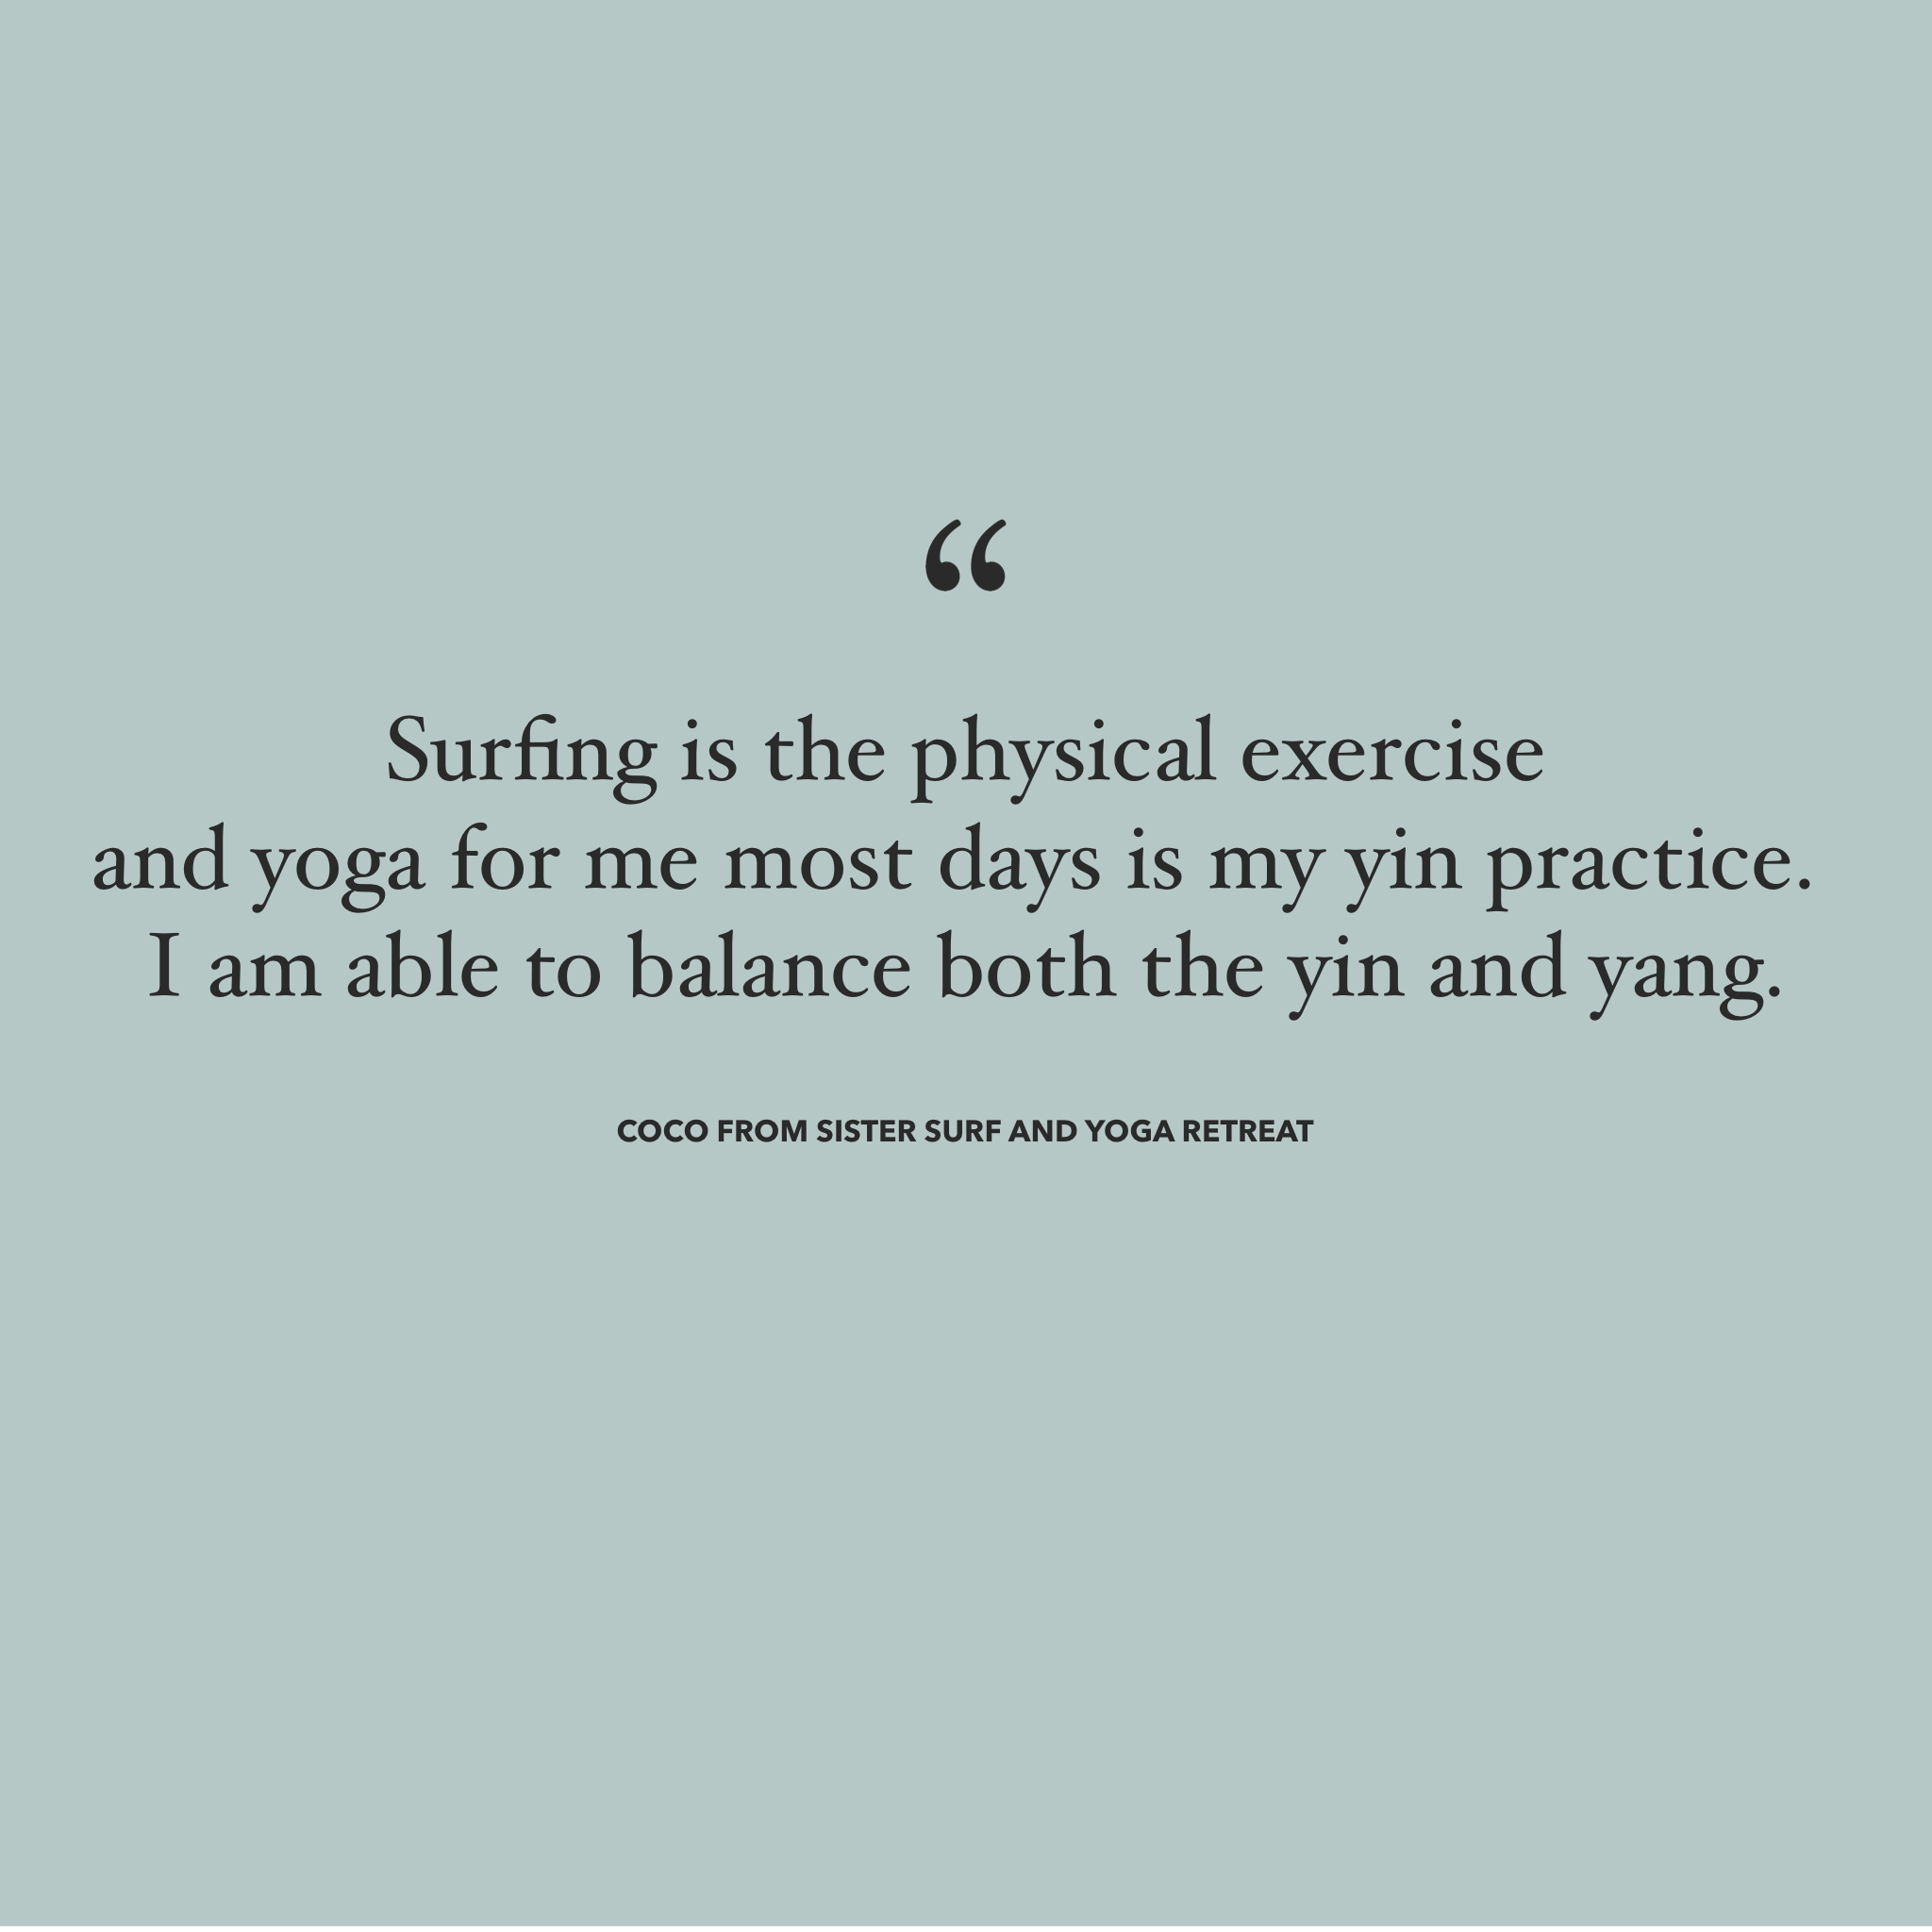 Yoga and Surfing - MAGDAKINEDESIGNS Swimwear Image